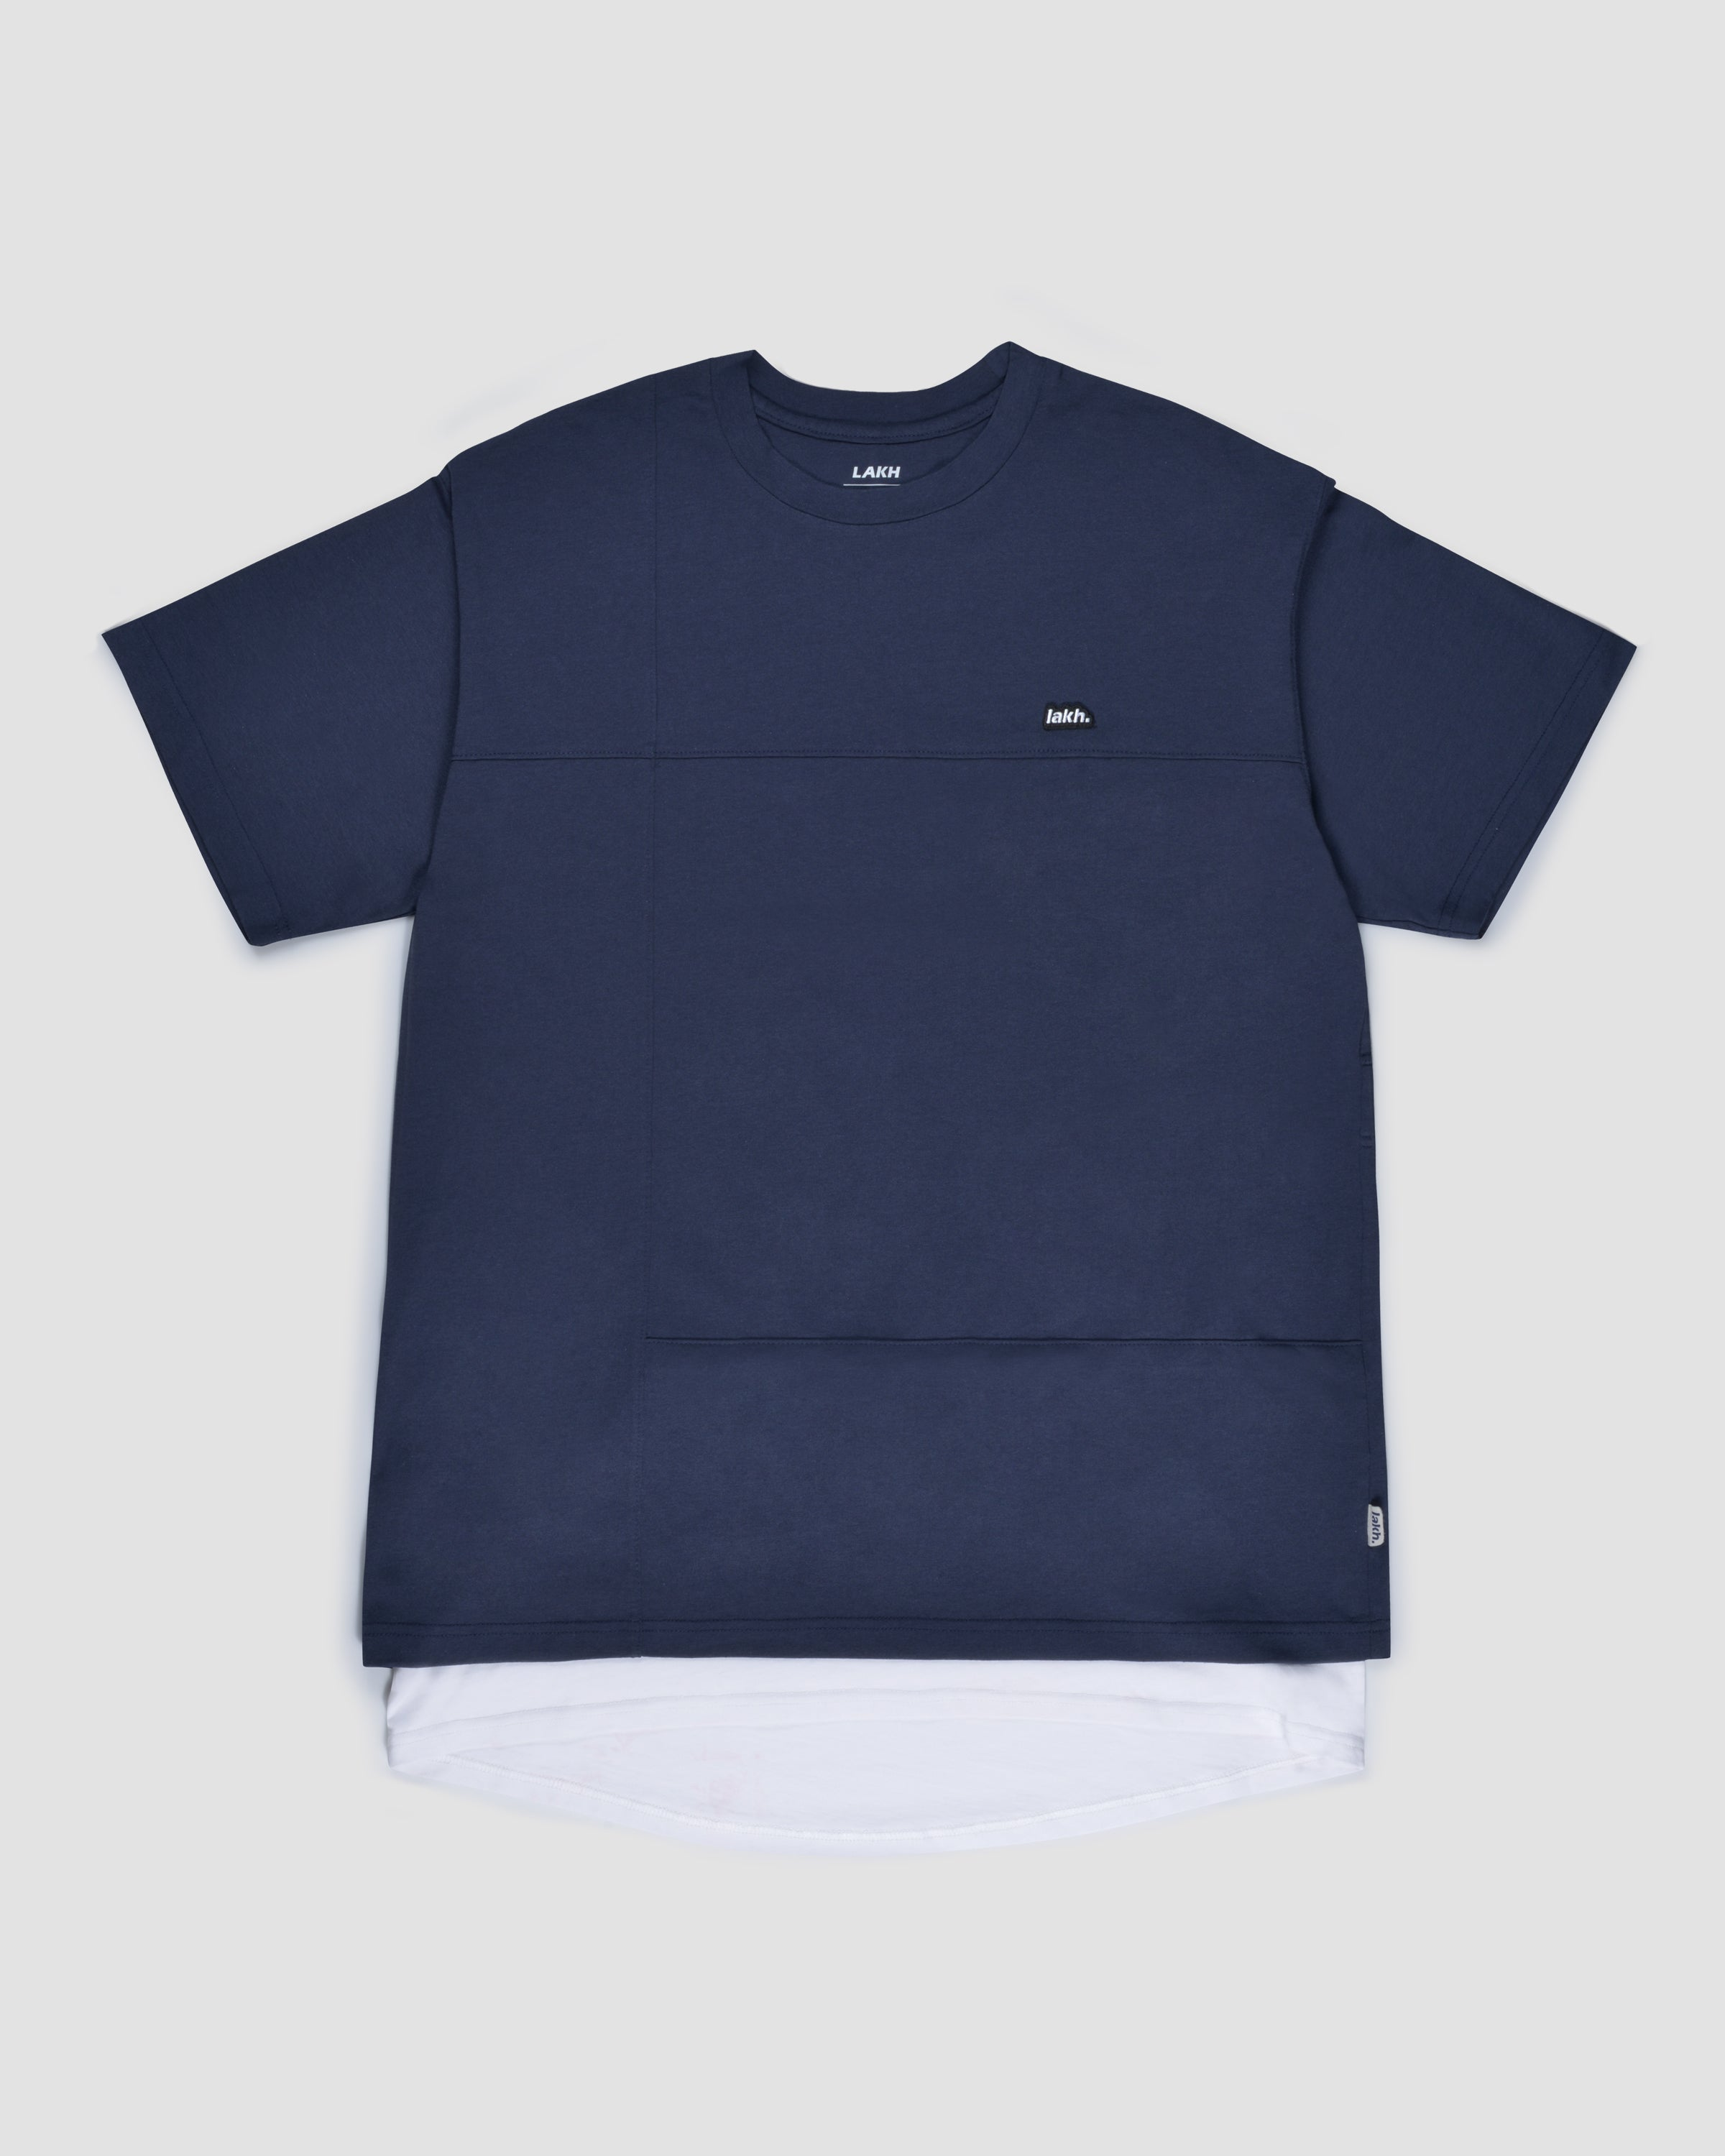 Layers Patch Tee - Navy